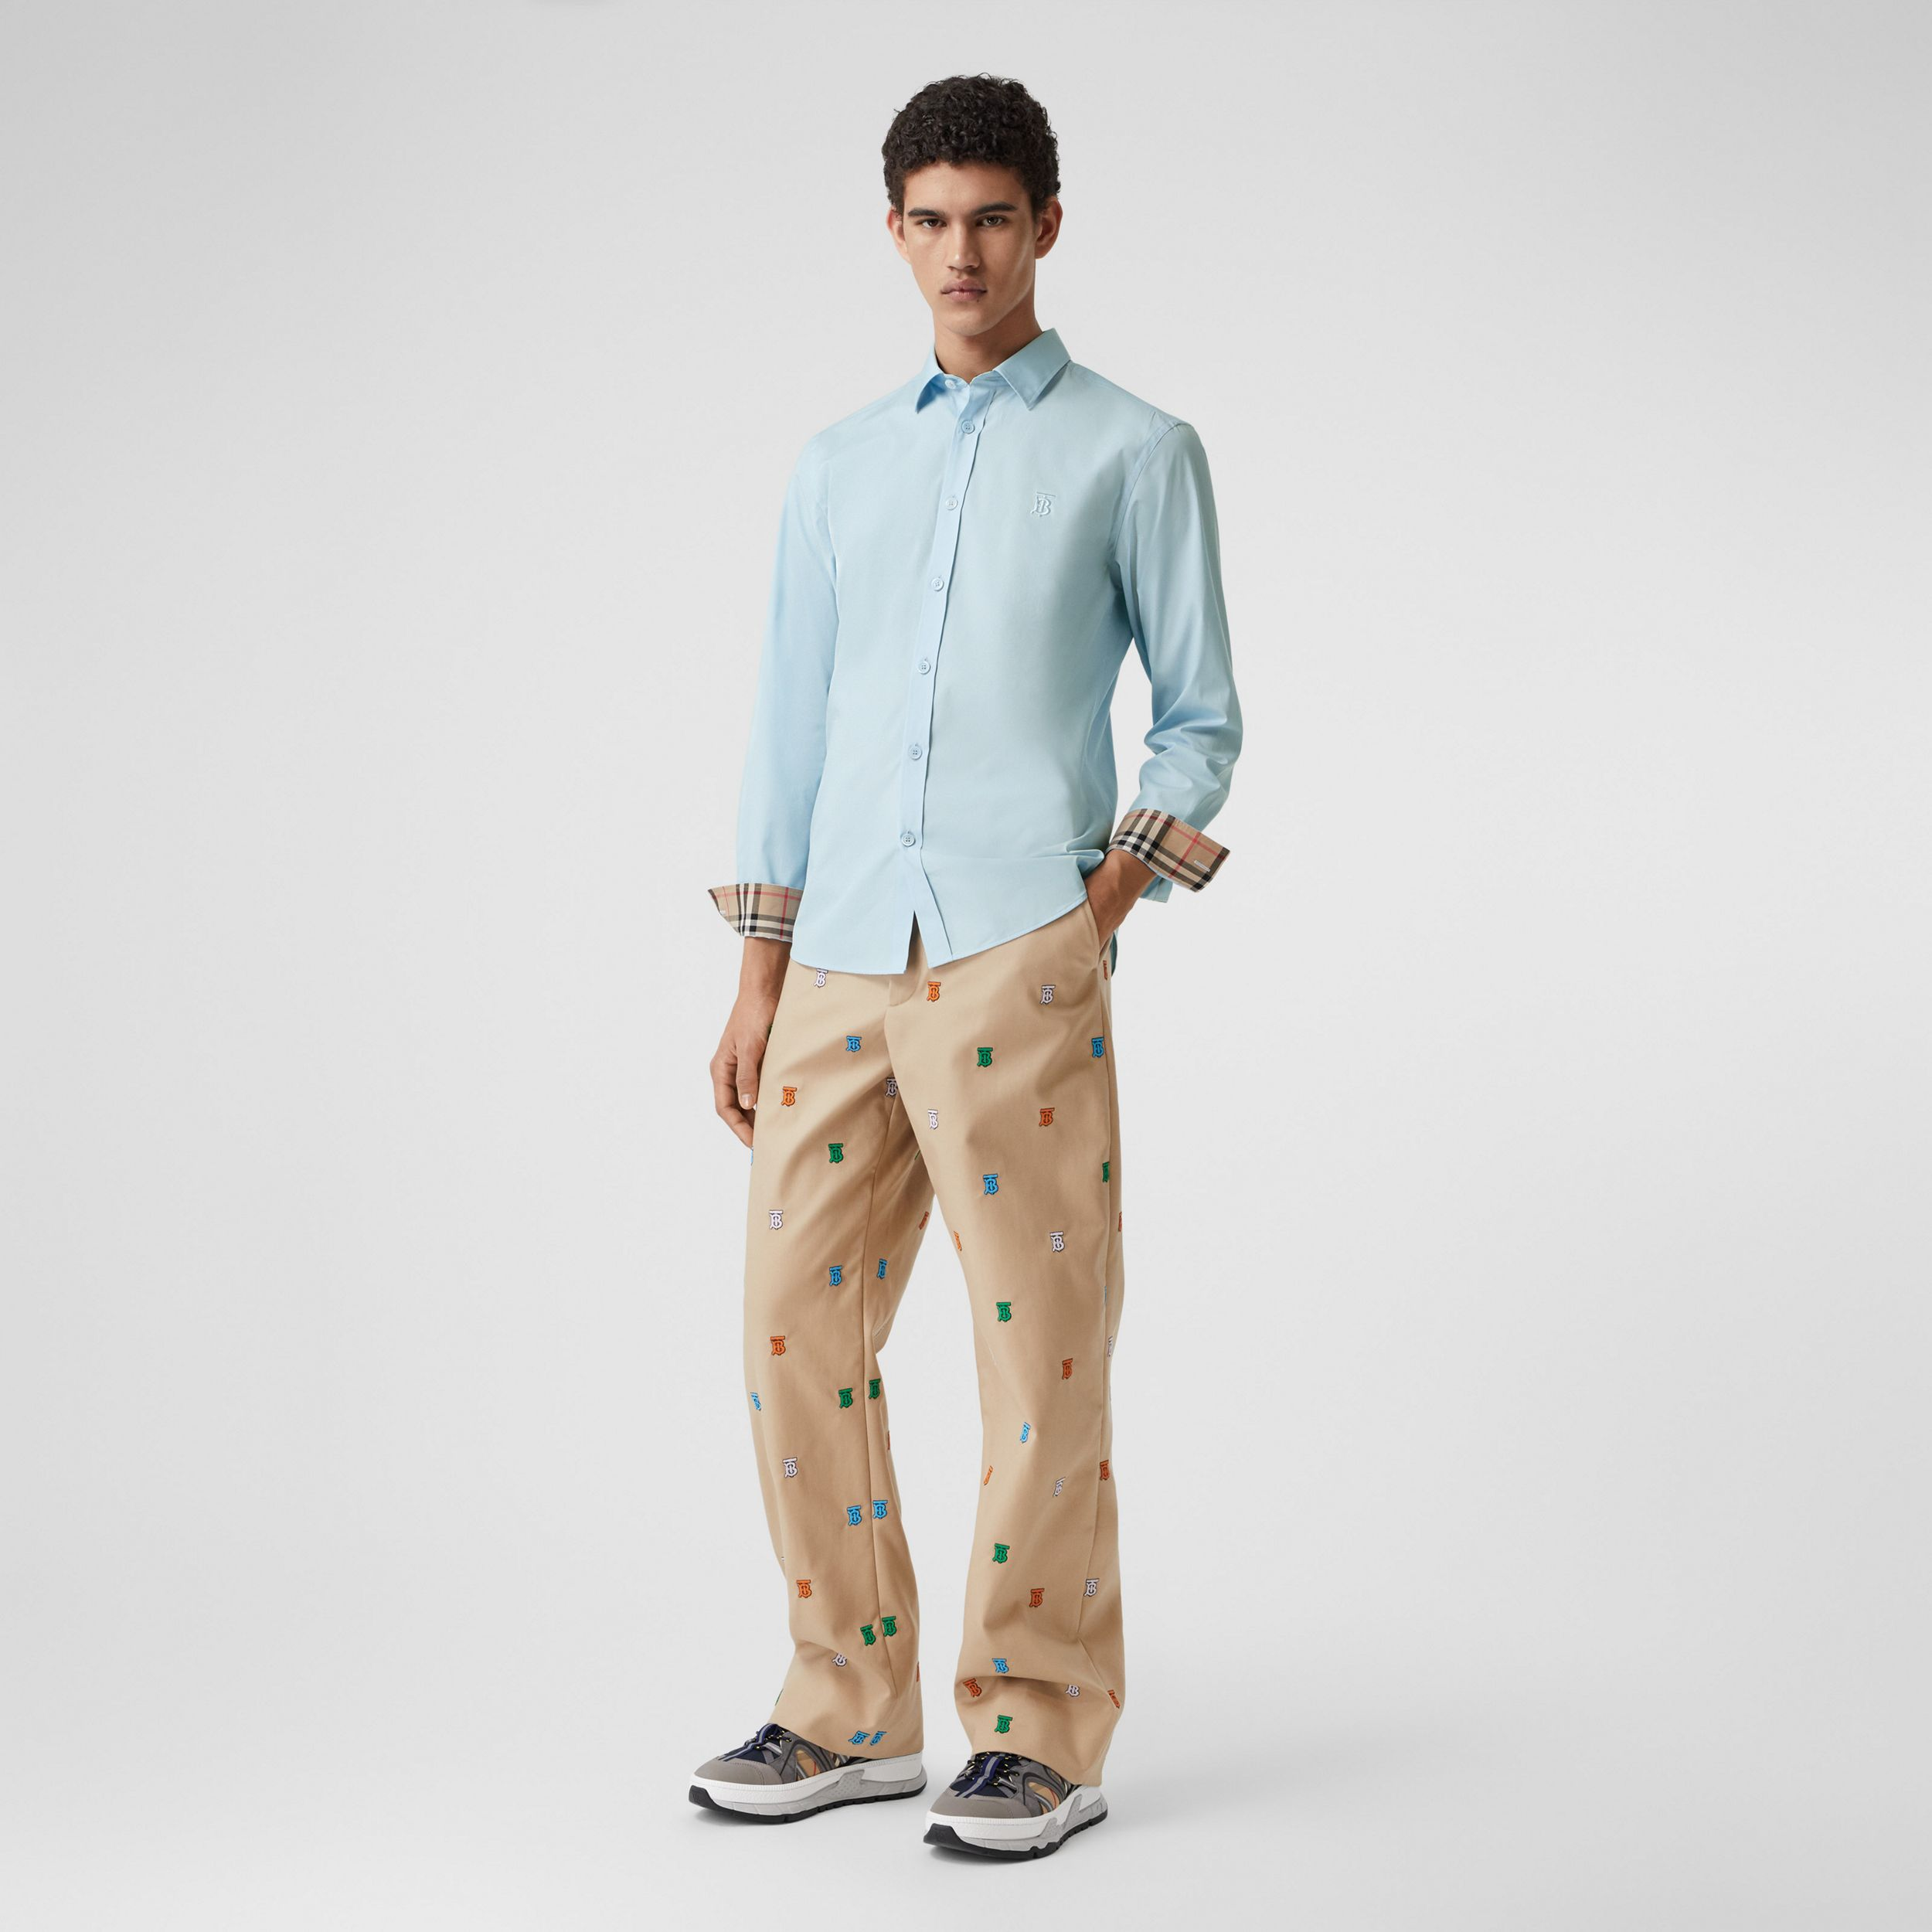 Slim Fit Monogram Motif Stretch Cotton Poplin Shirt in Pale Blue - Men | Burberry Hong Kong S.A.R. - 1